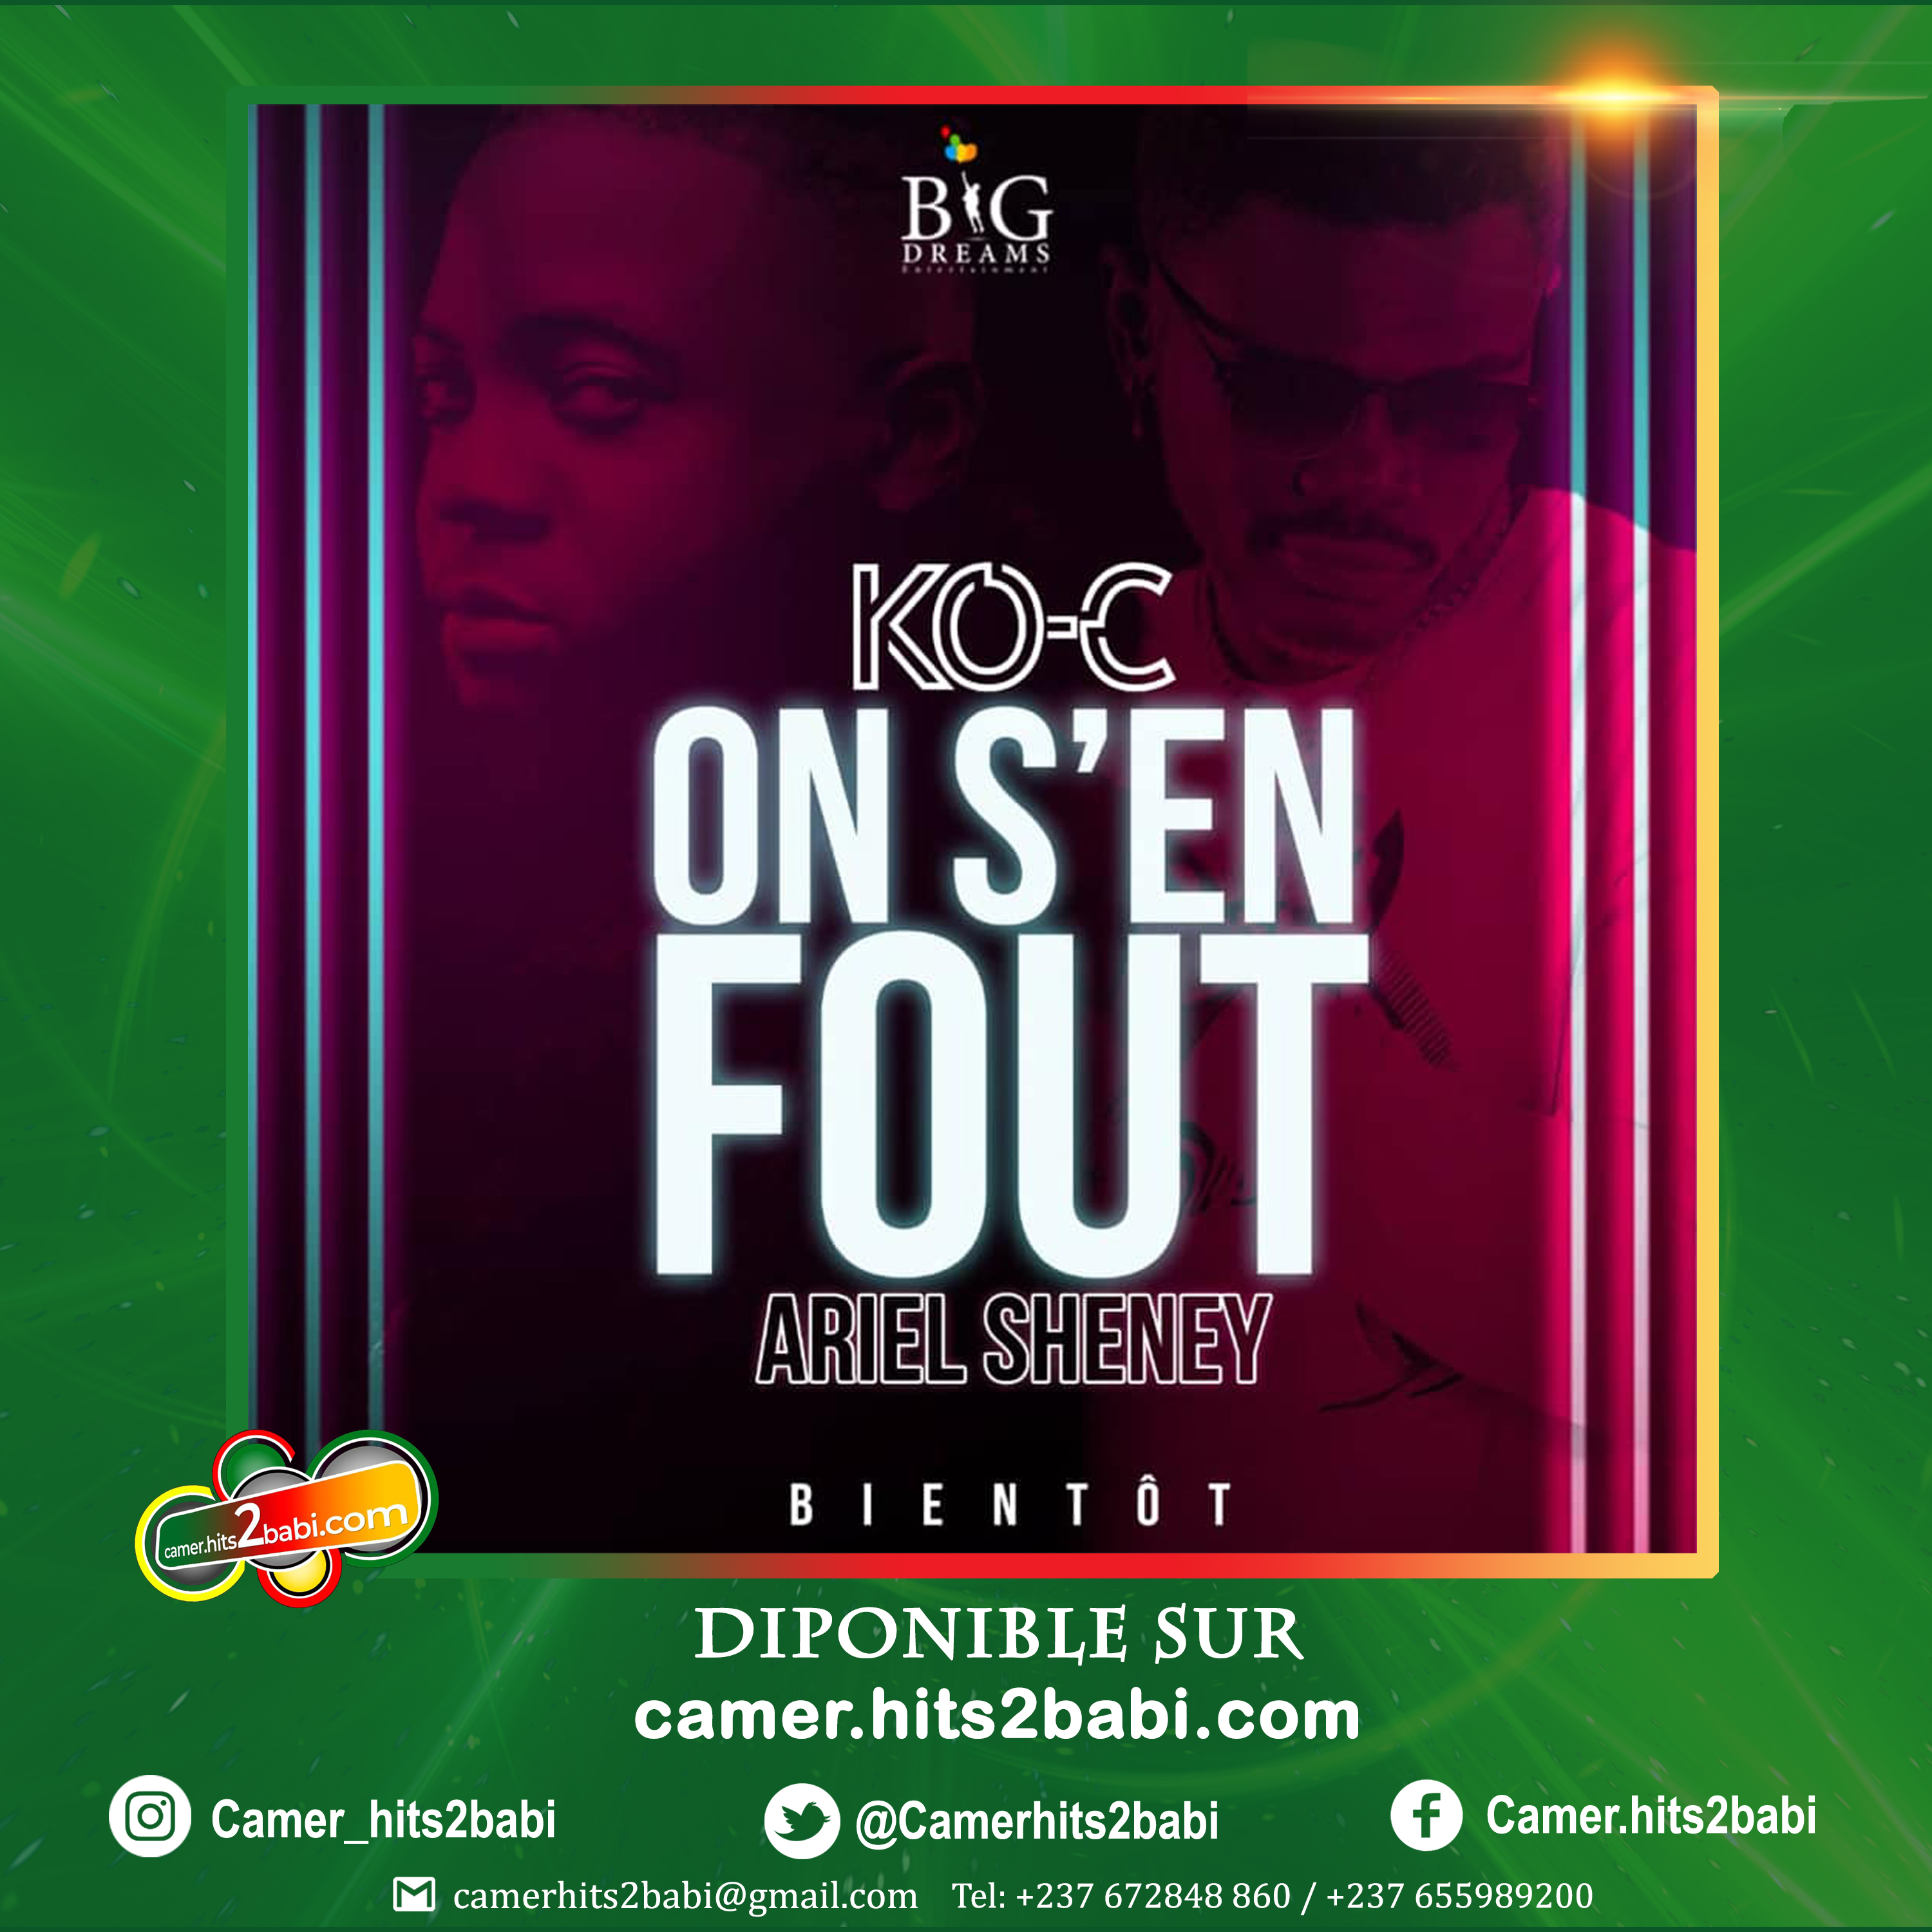 KO-C FT ARIEL SHENEY - ON S'EN FOUT